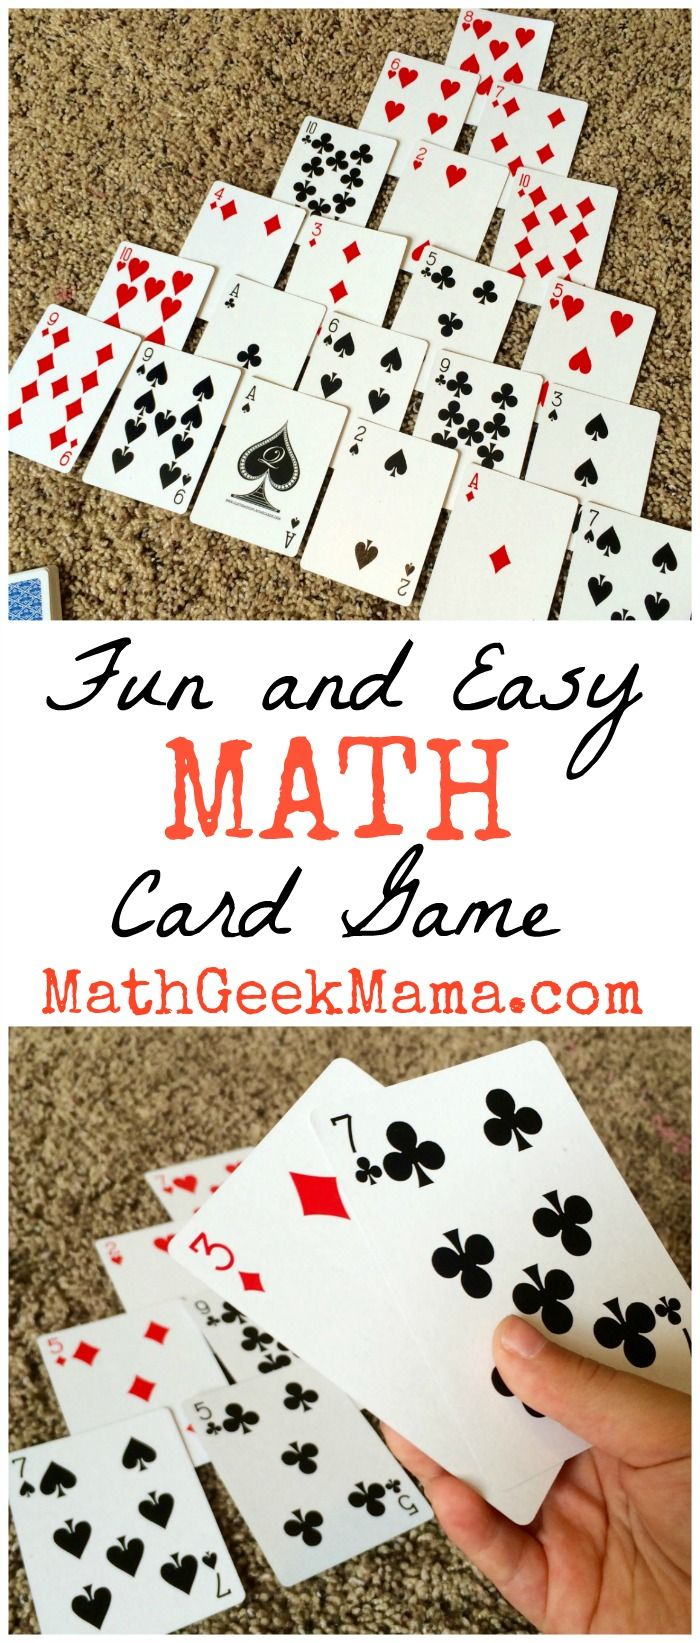 Pyramid is a simple to learn math card game that can be played with a regular set of playing cards, and helps build number sense in early math learners.